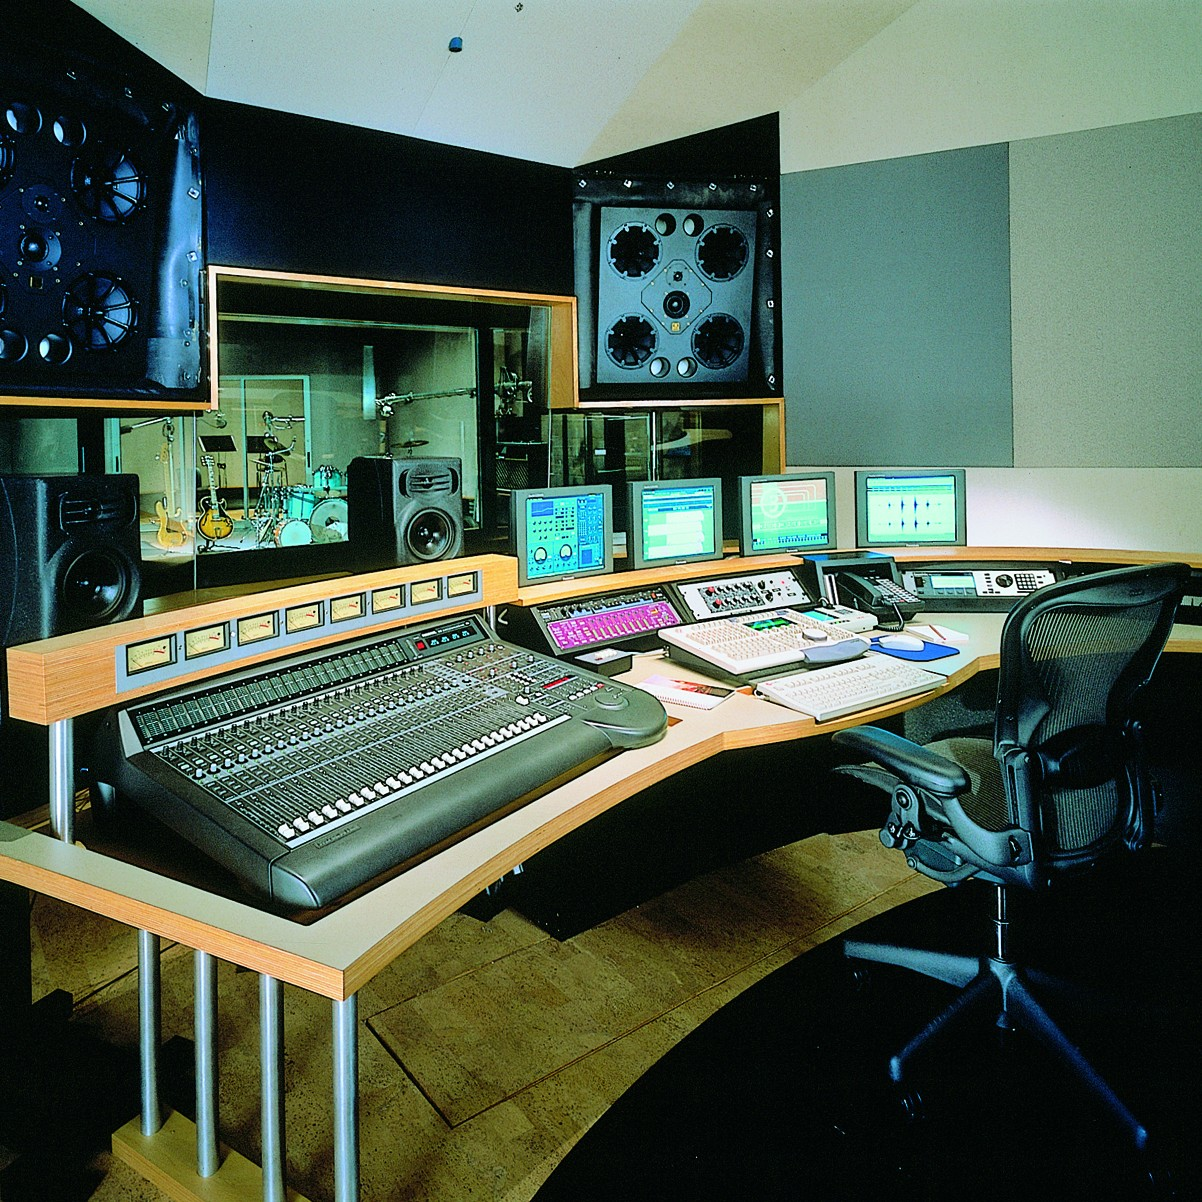 Downstream Studio